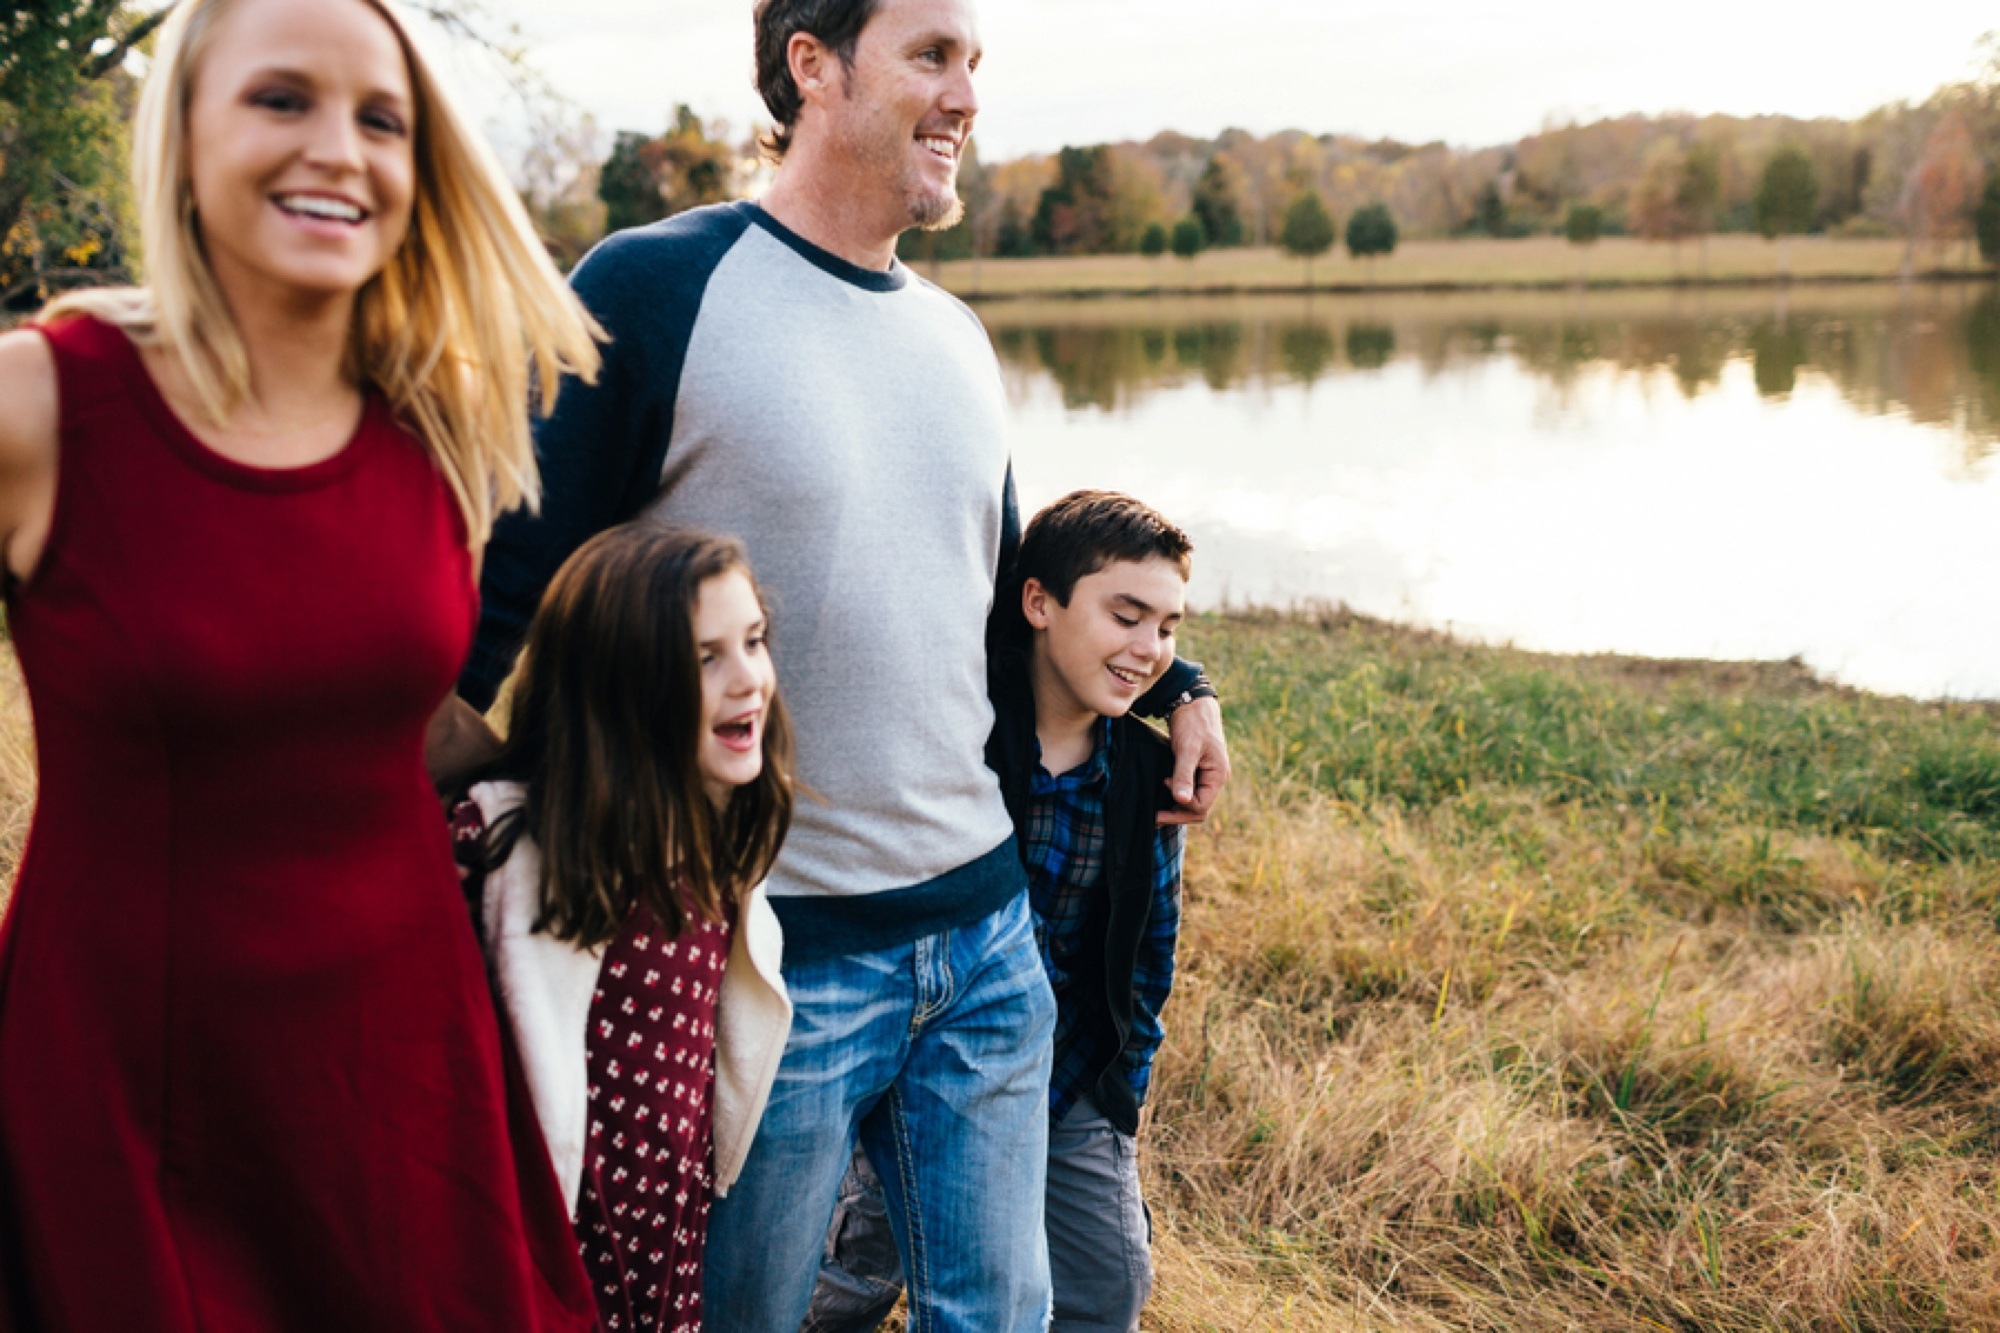 family of 4 picture ideas, fall pictures, what to wear for family pictures, Lakeside Fall Family Session